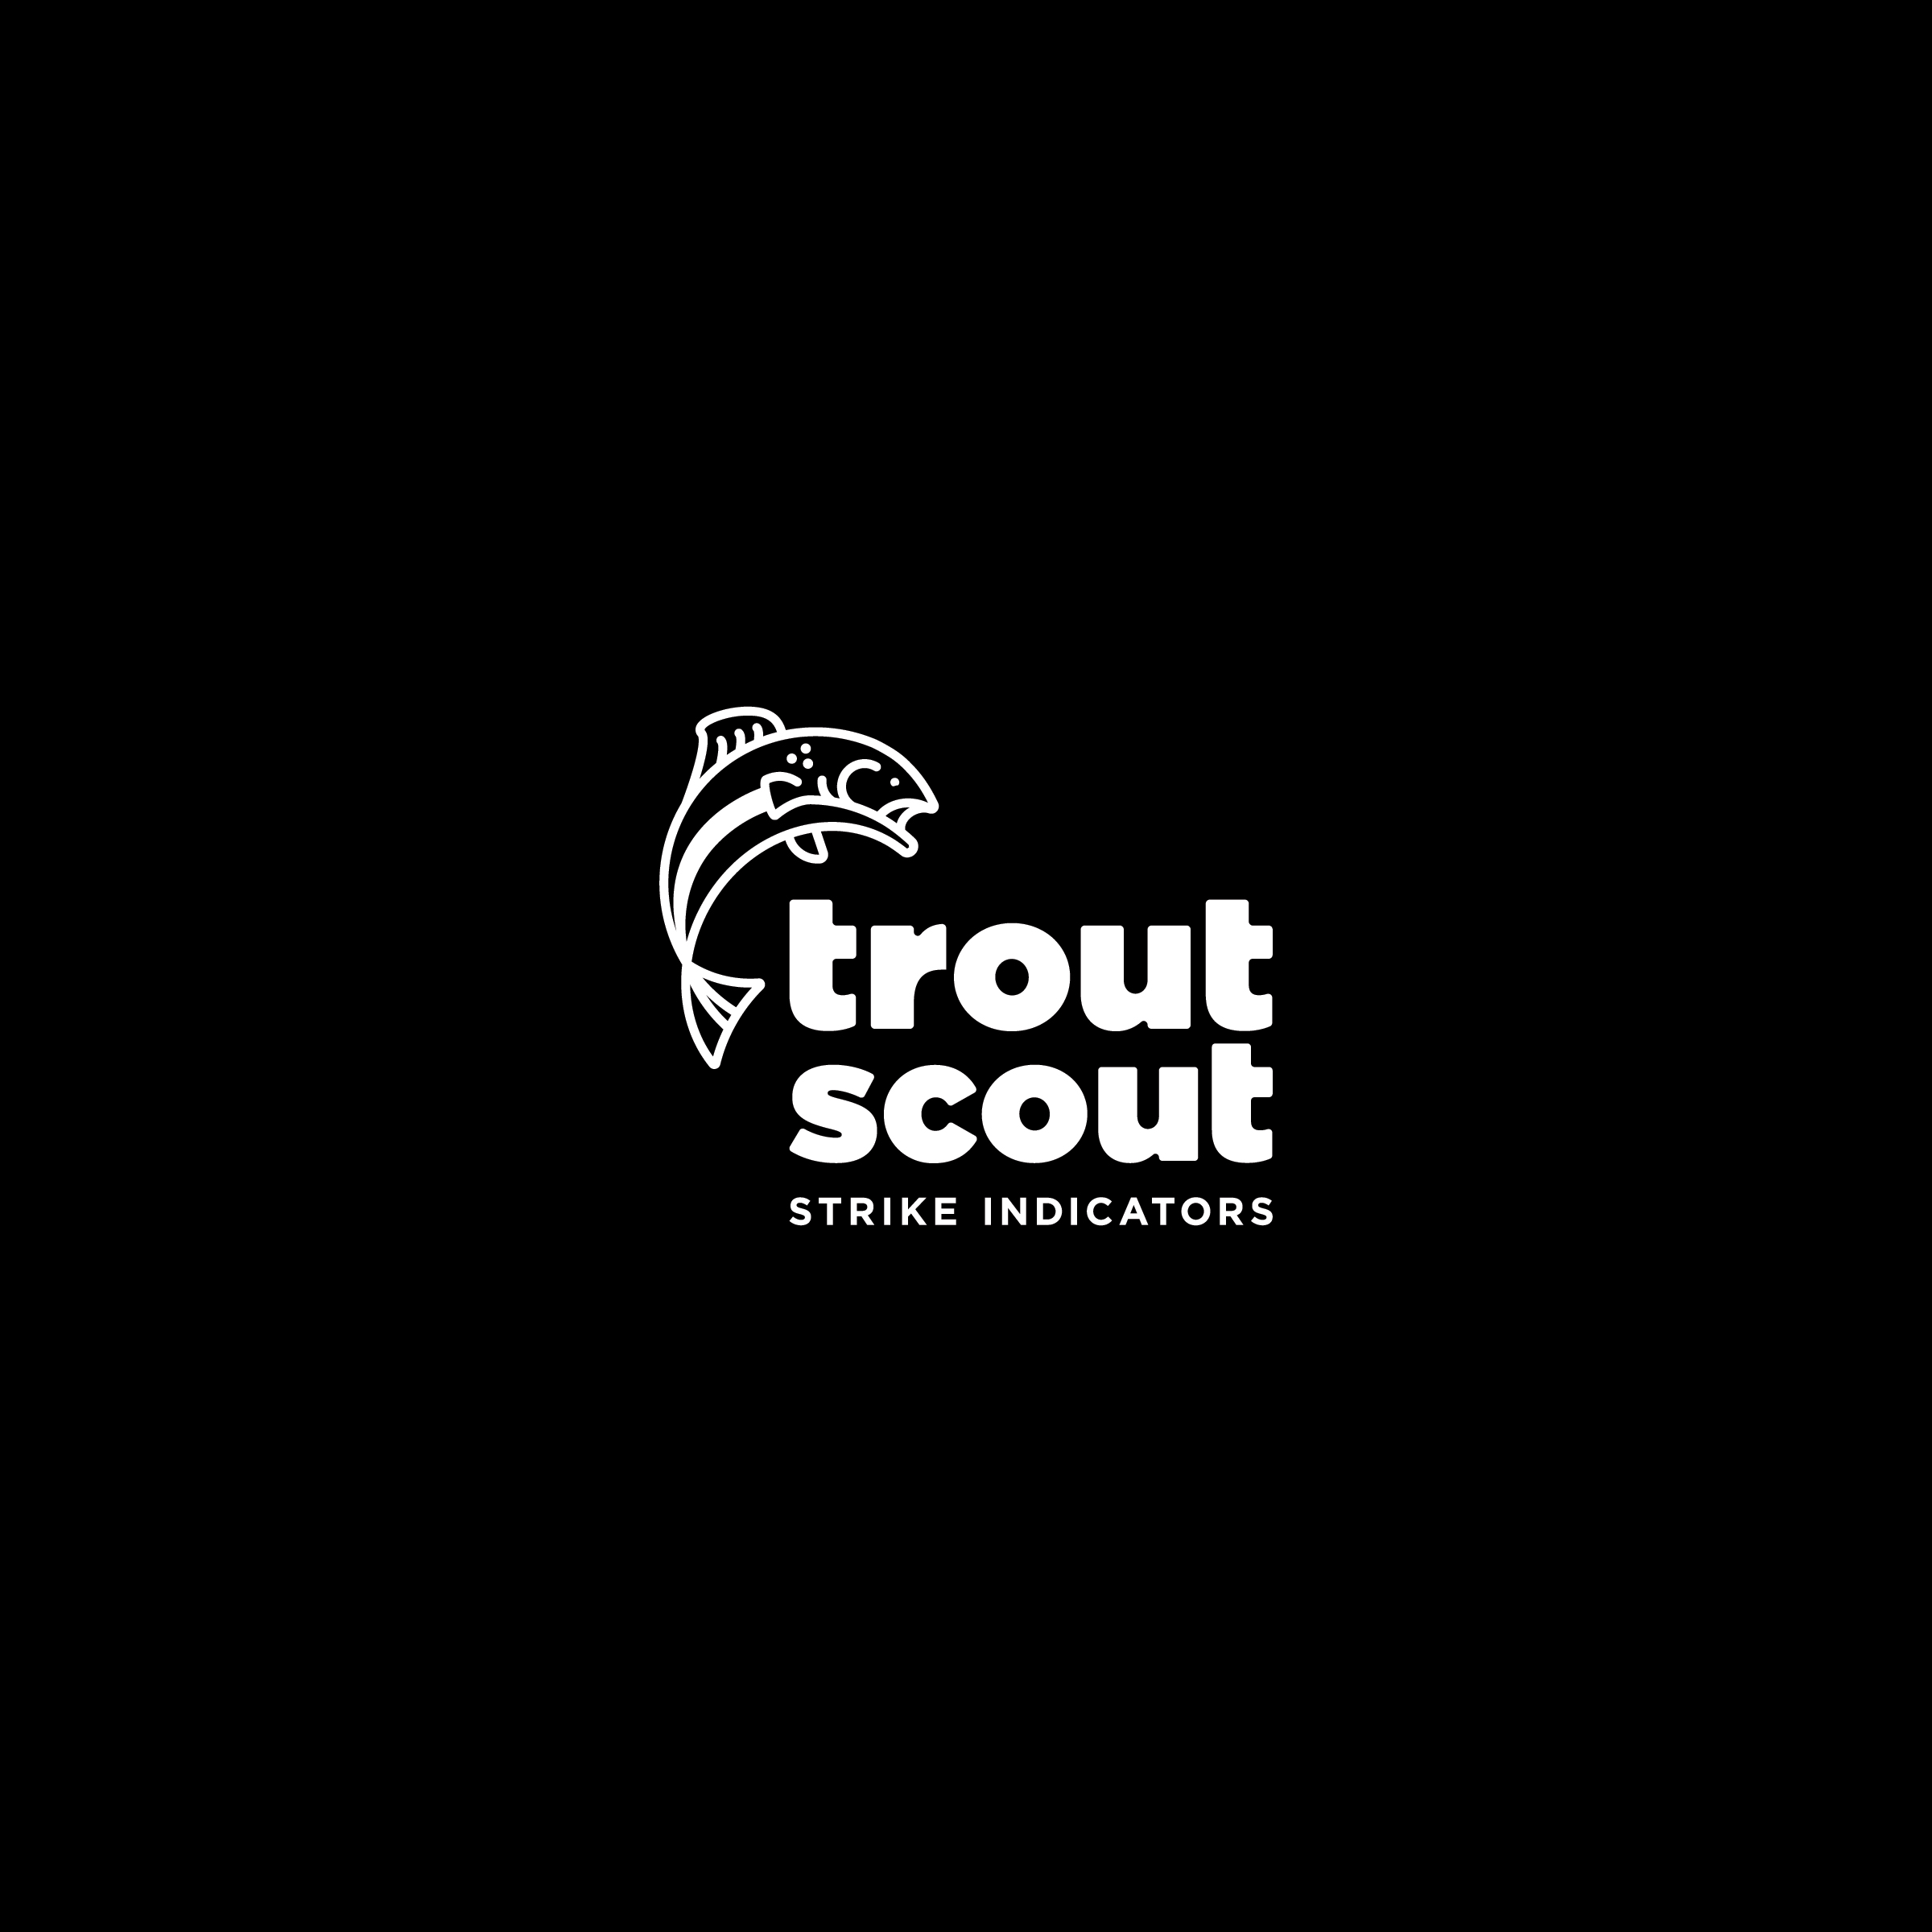 TroutScout_White_Vrt.jpg